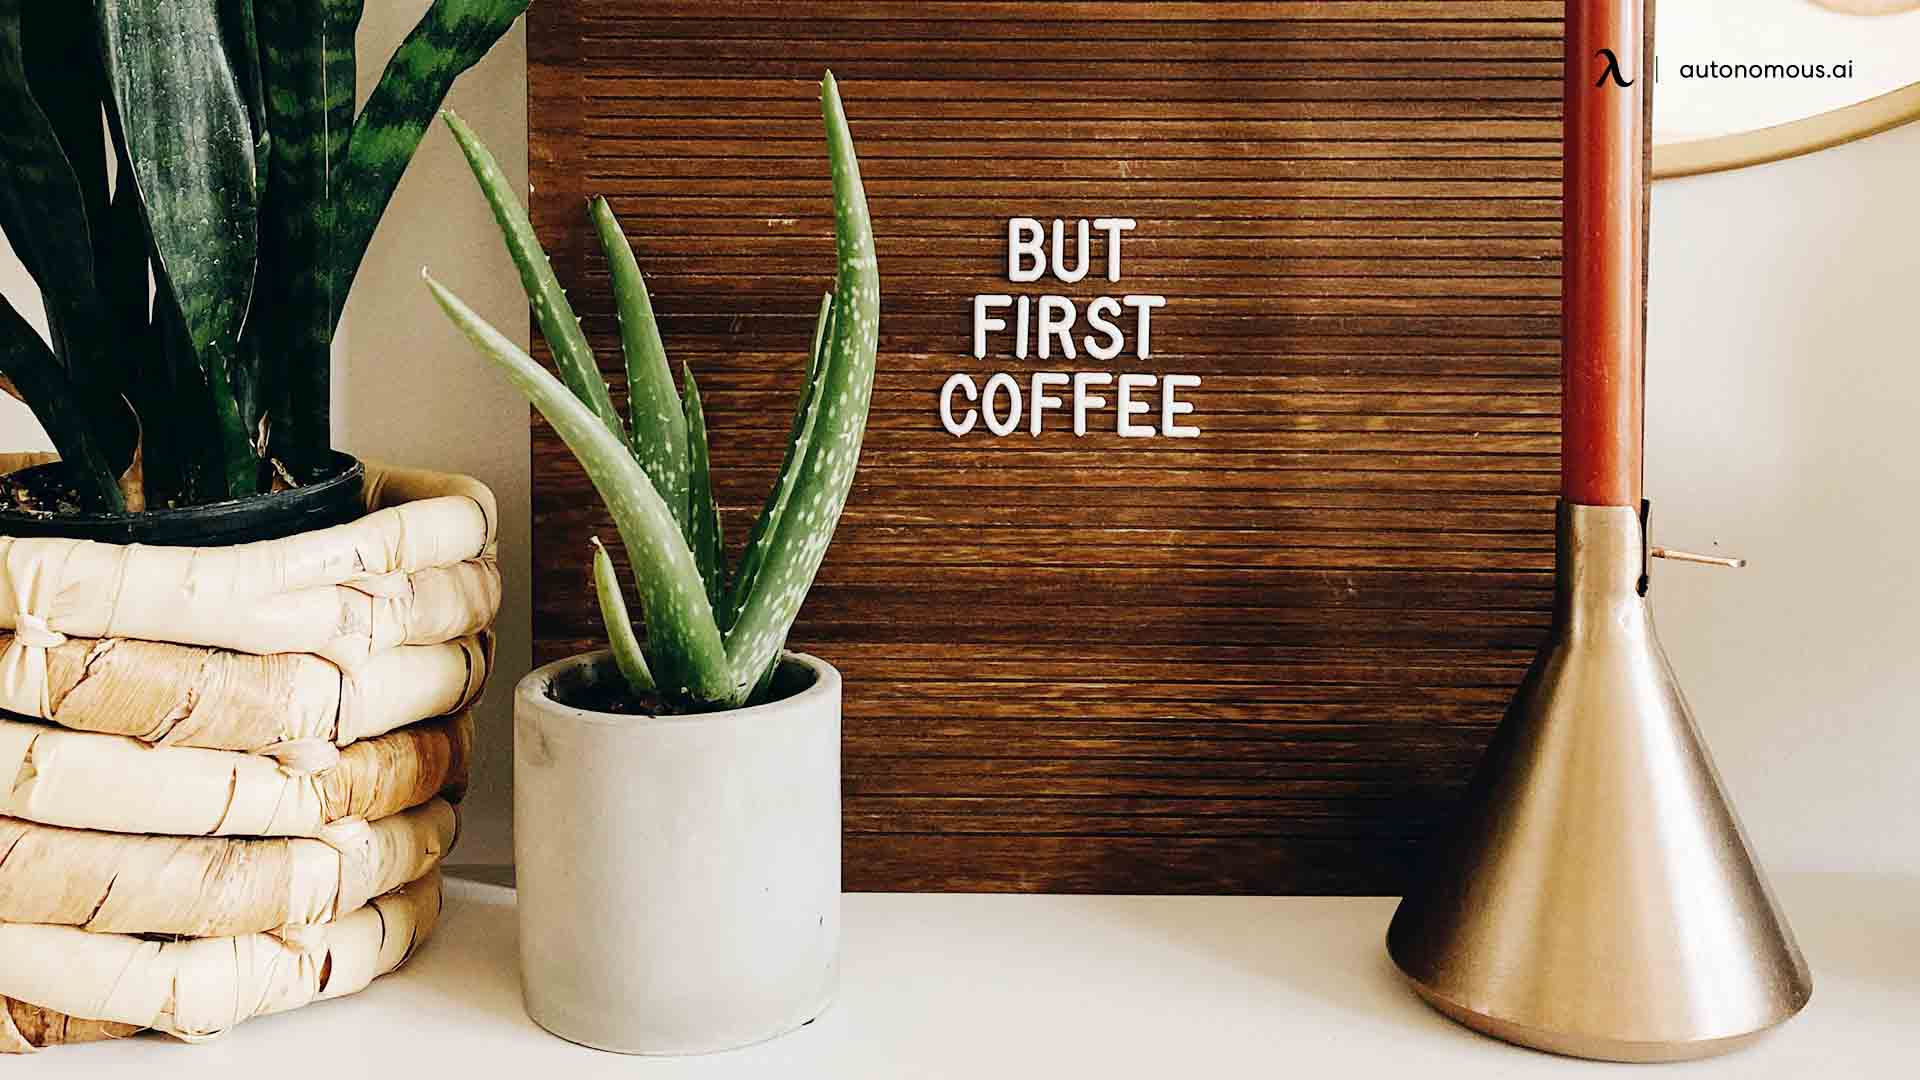 10 Best Office Desk Plants That Bring the Green to Workspace